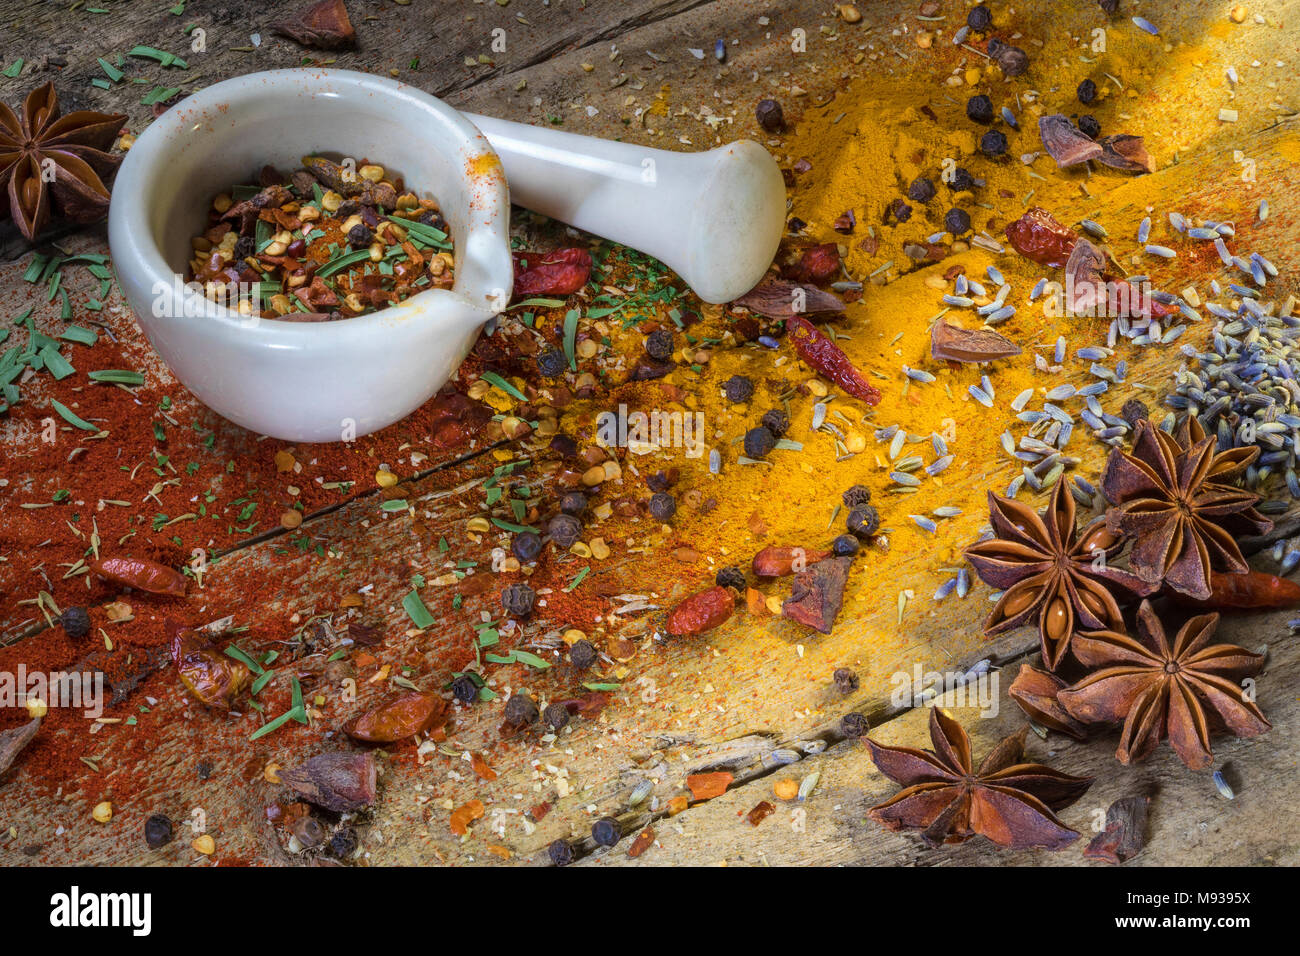 Crushing herbs and spices in a mortar and pestle in a rustic farmhouse kitchen. - Stock Image